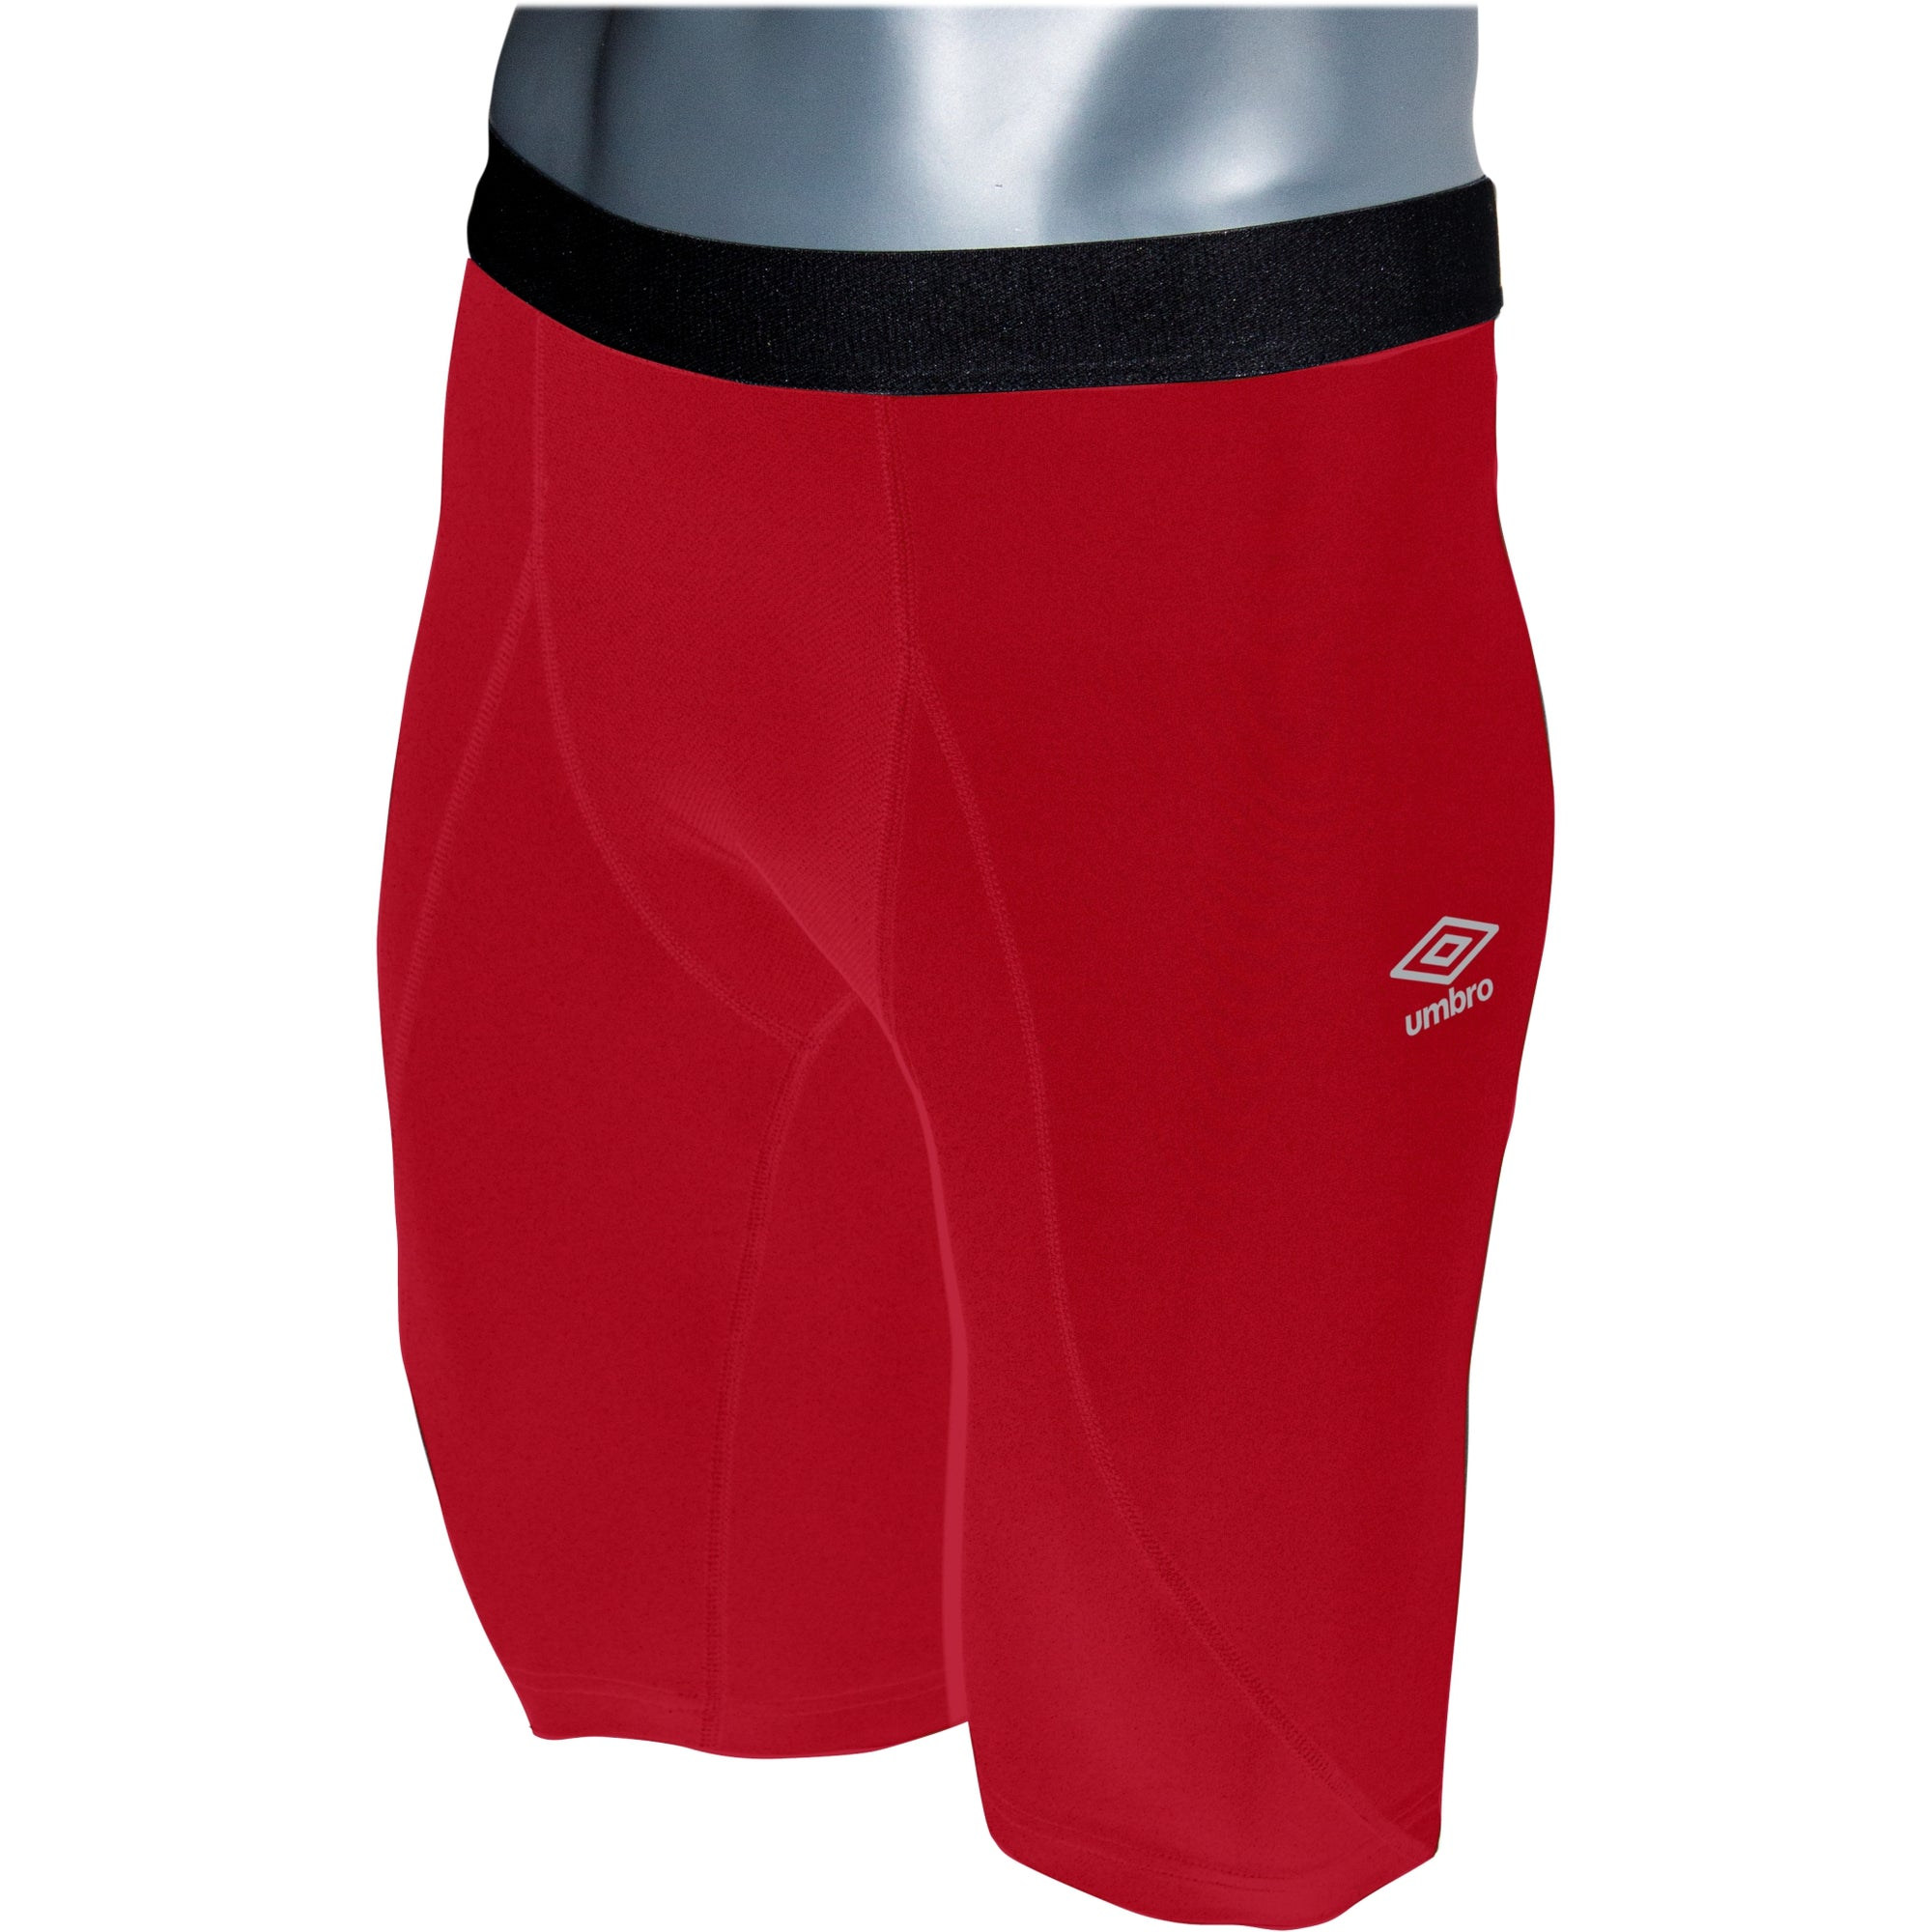 Umbro Elite Player Power Short in vermillion (red) with black waist band